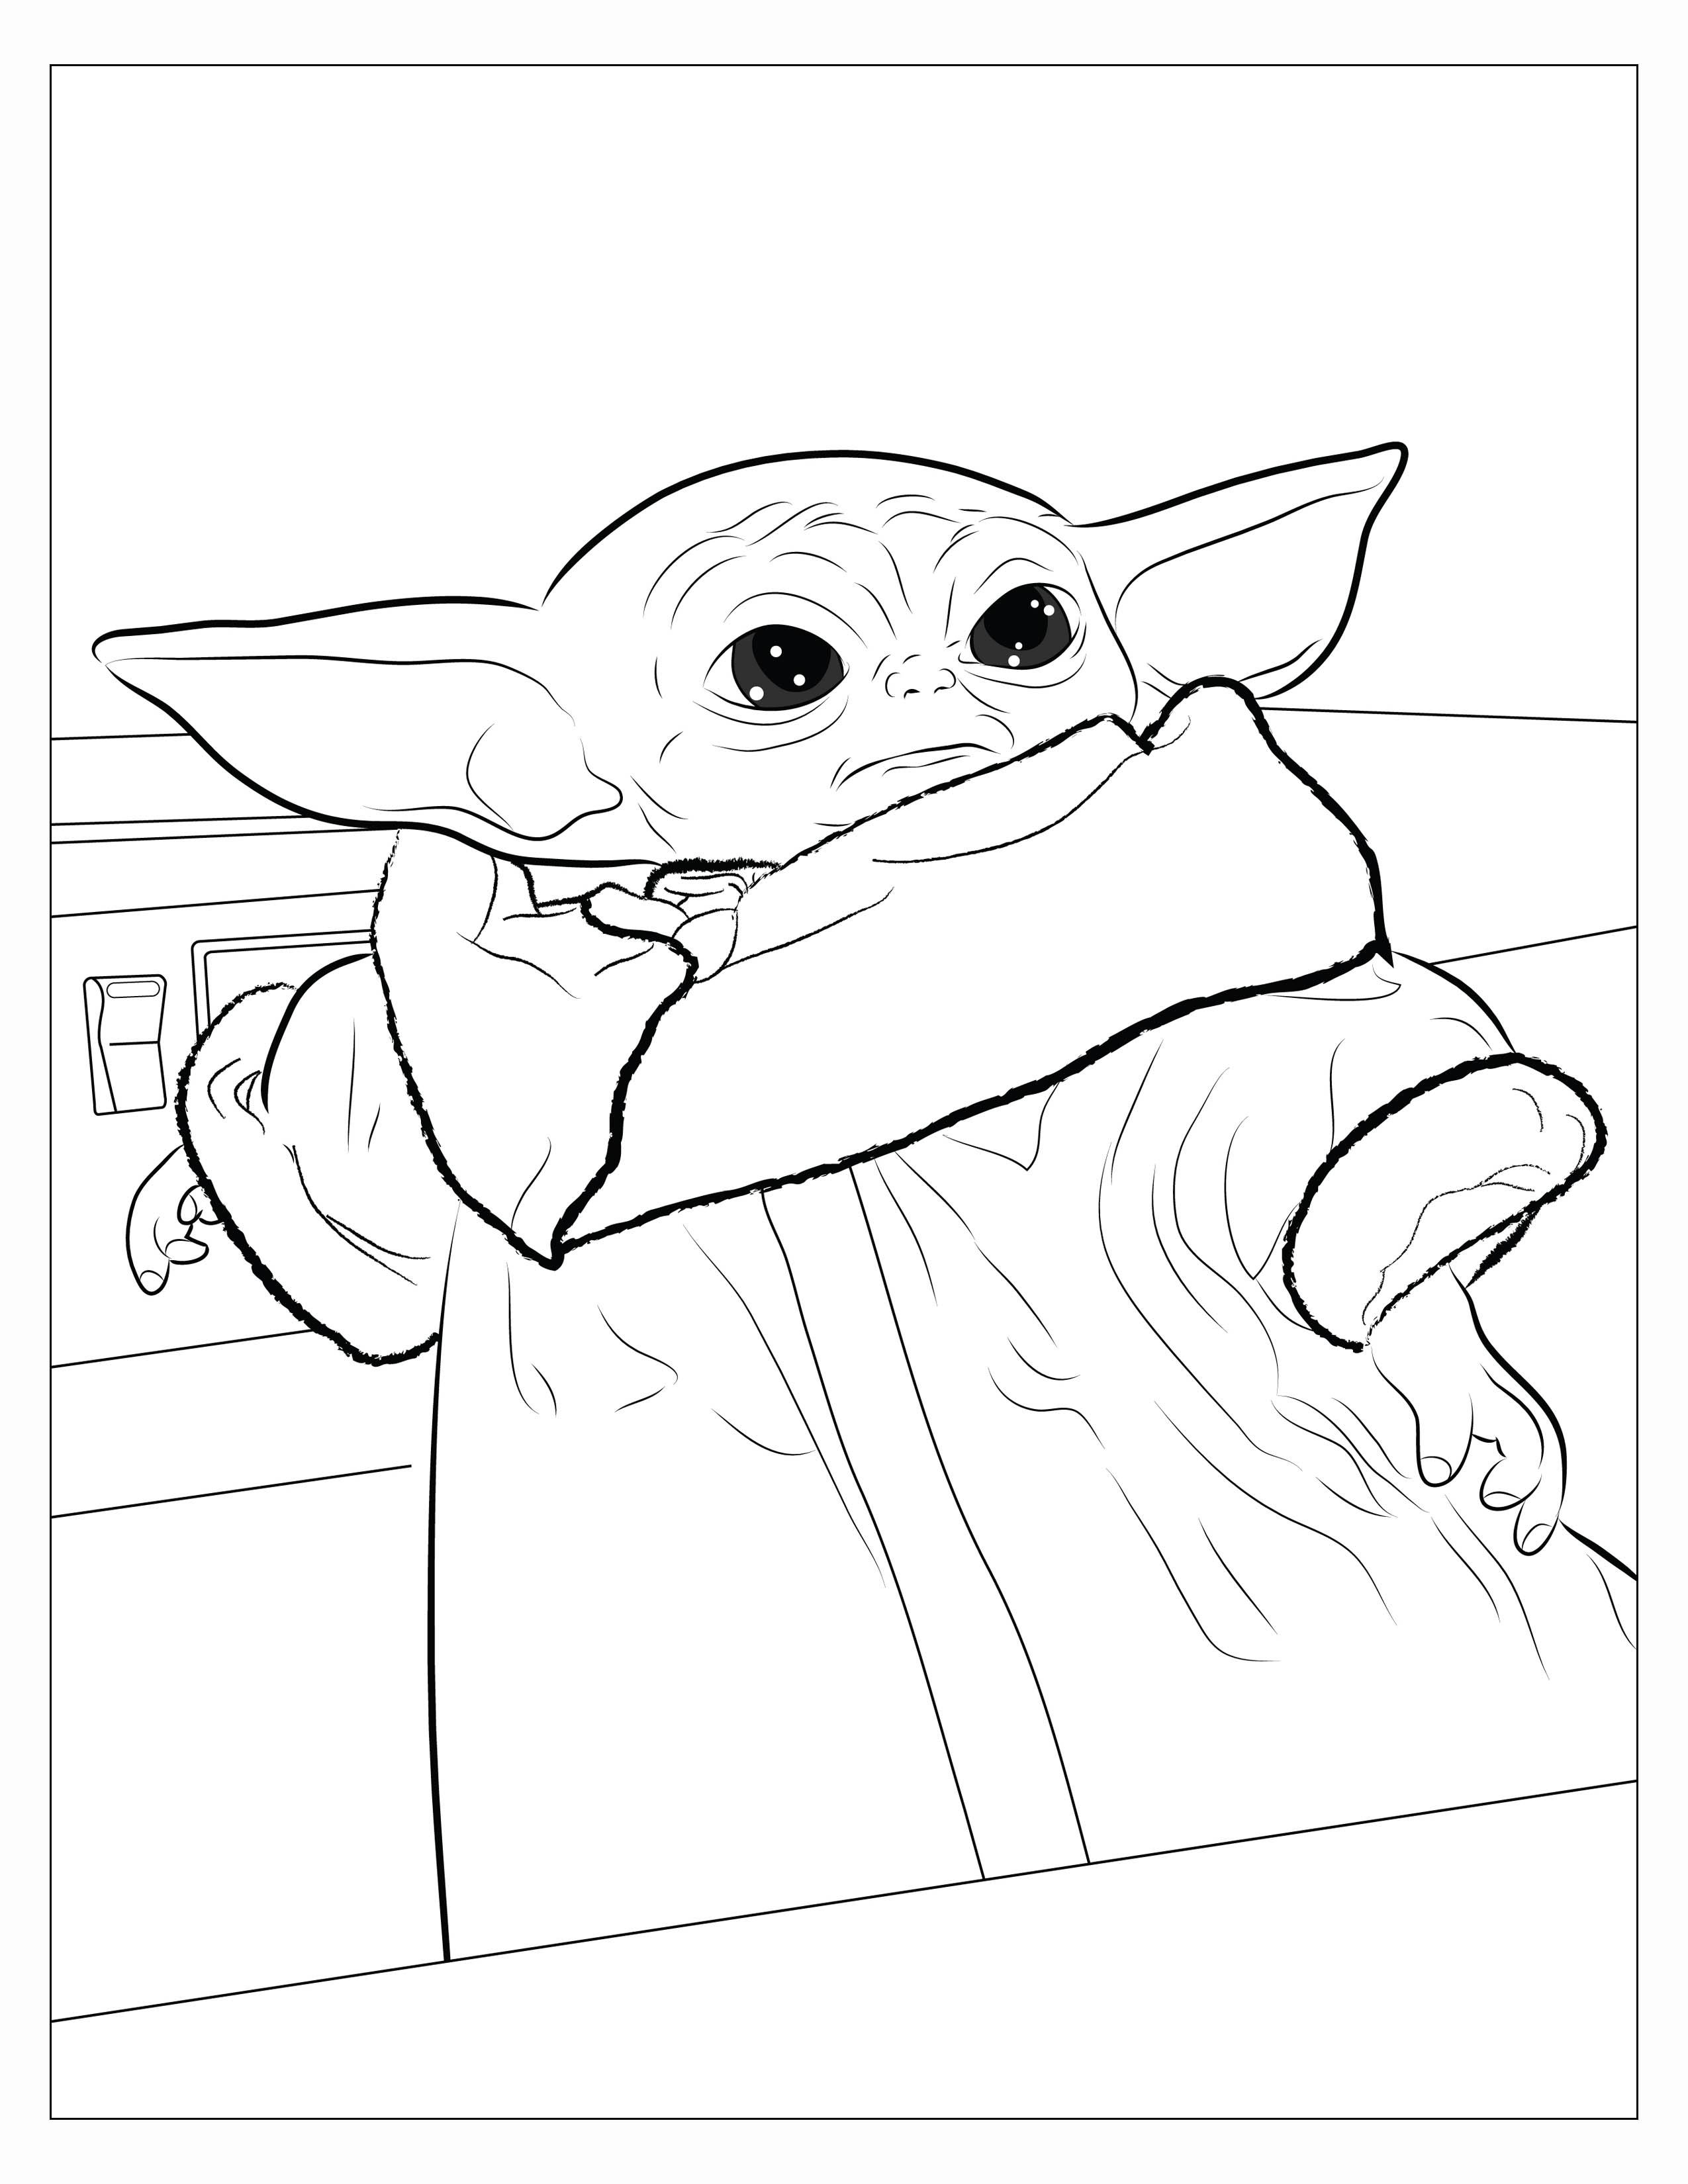 printable yoda coloring pages started drawing a holiday themed baby yoda but not sure coloring pages yoda printable